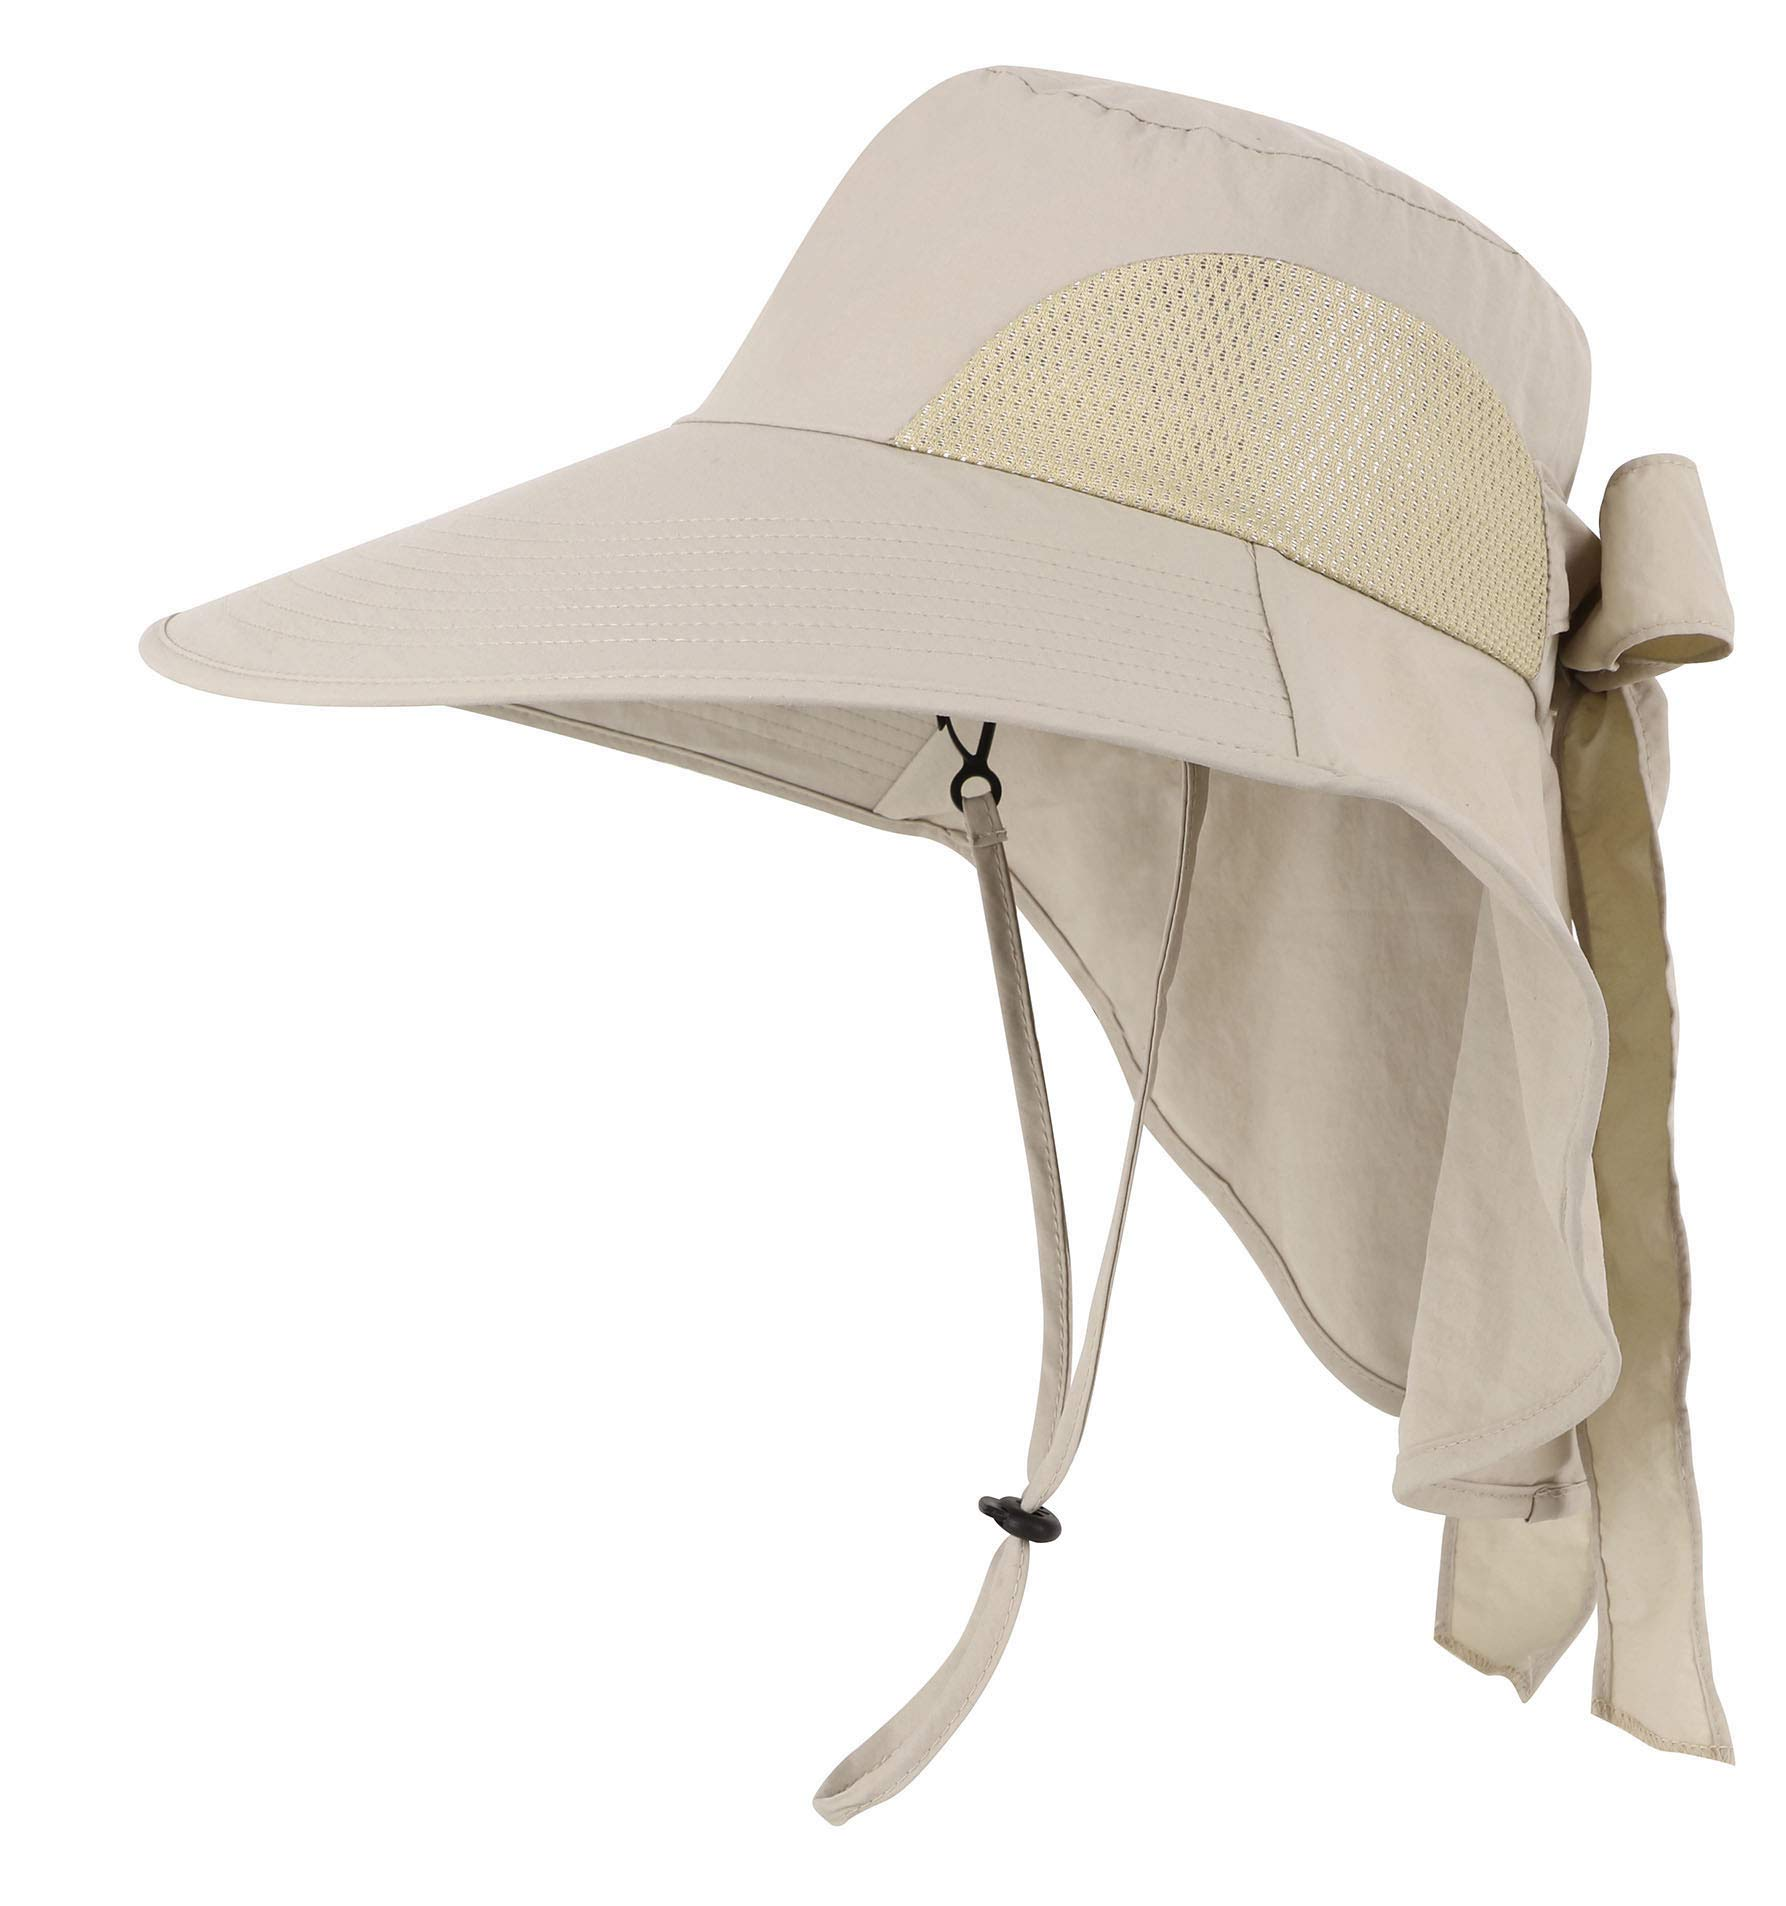 Womens Foldable Flap Cover UPF 50+ UV Protective Wide Brim Bucket Sun Hat Khaki by Toppers